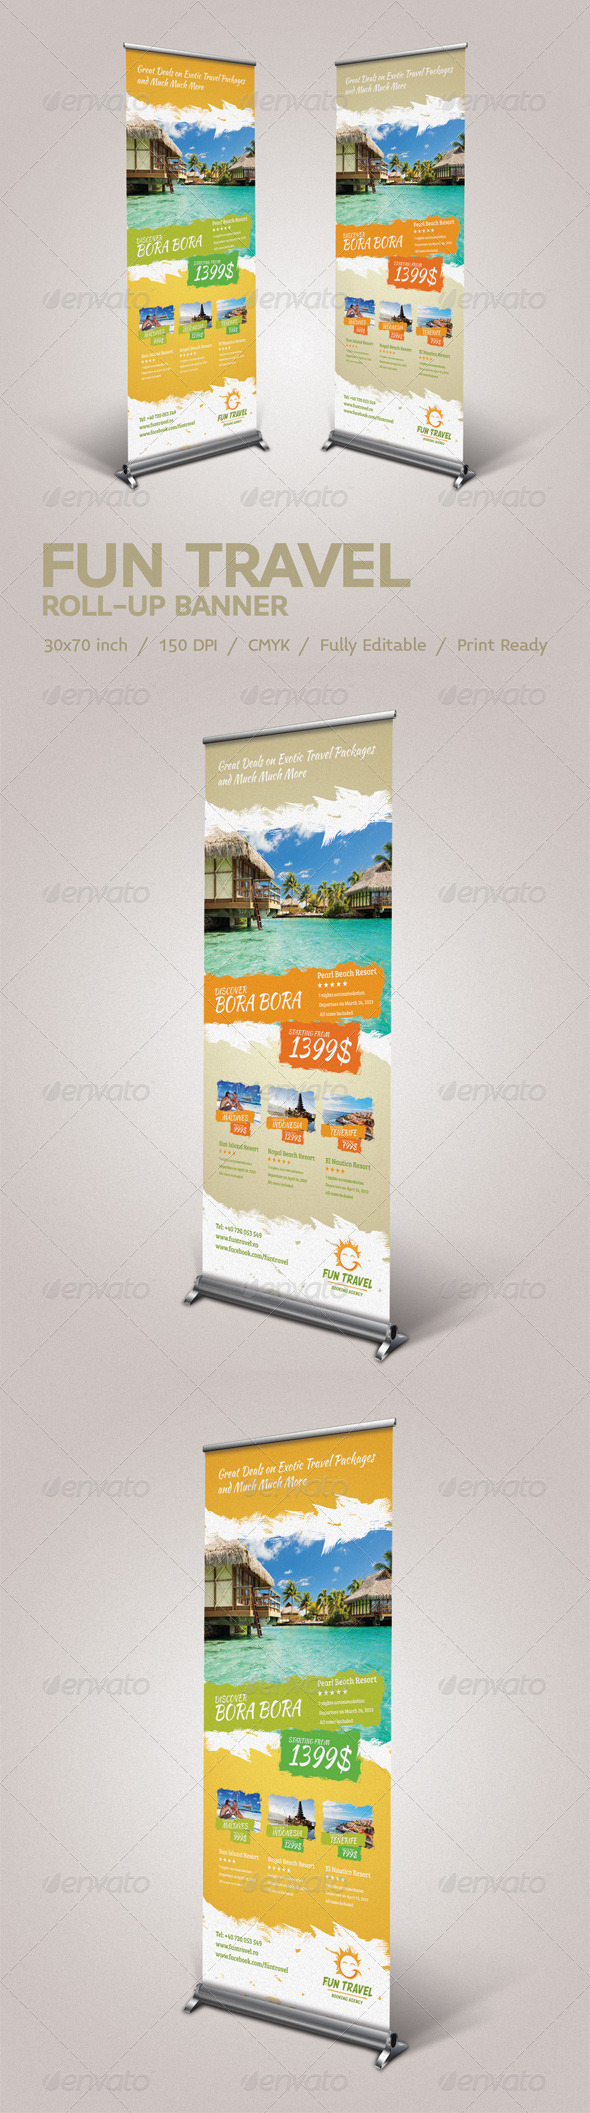 Fun Travel Roll-Up Banner - Signage Print Templates